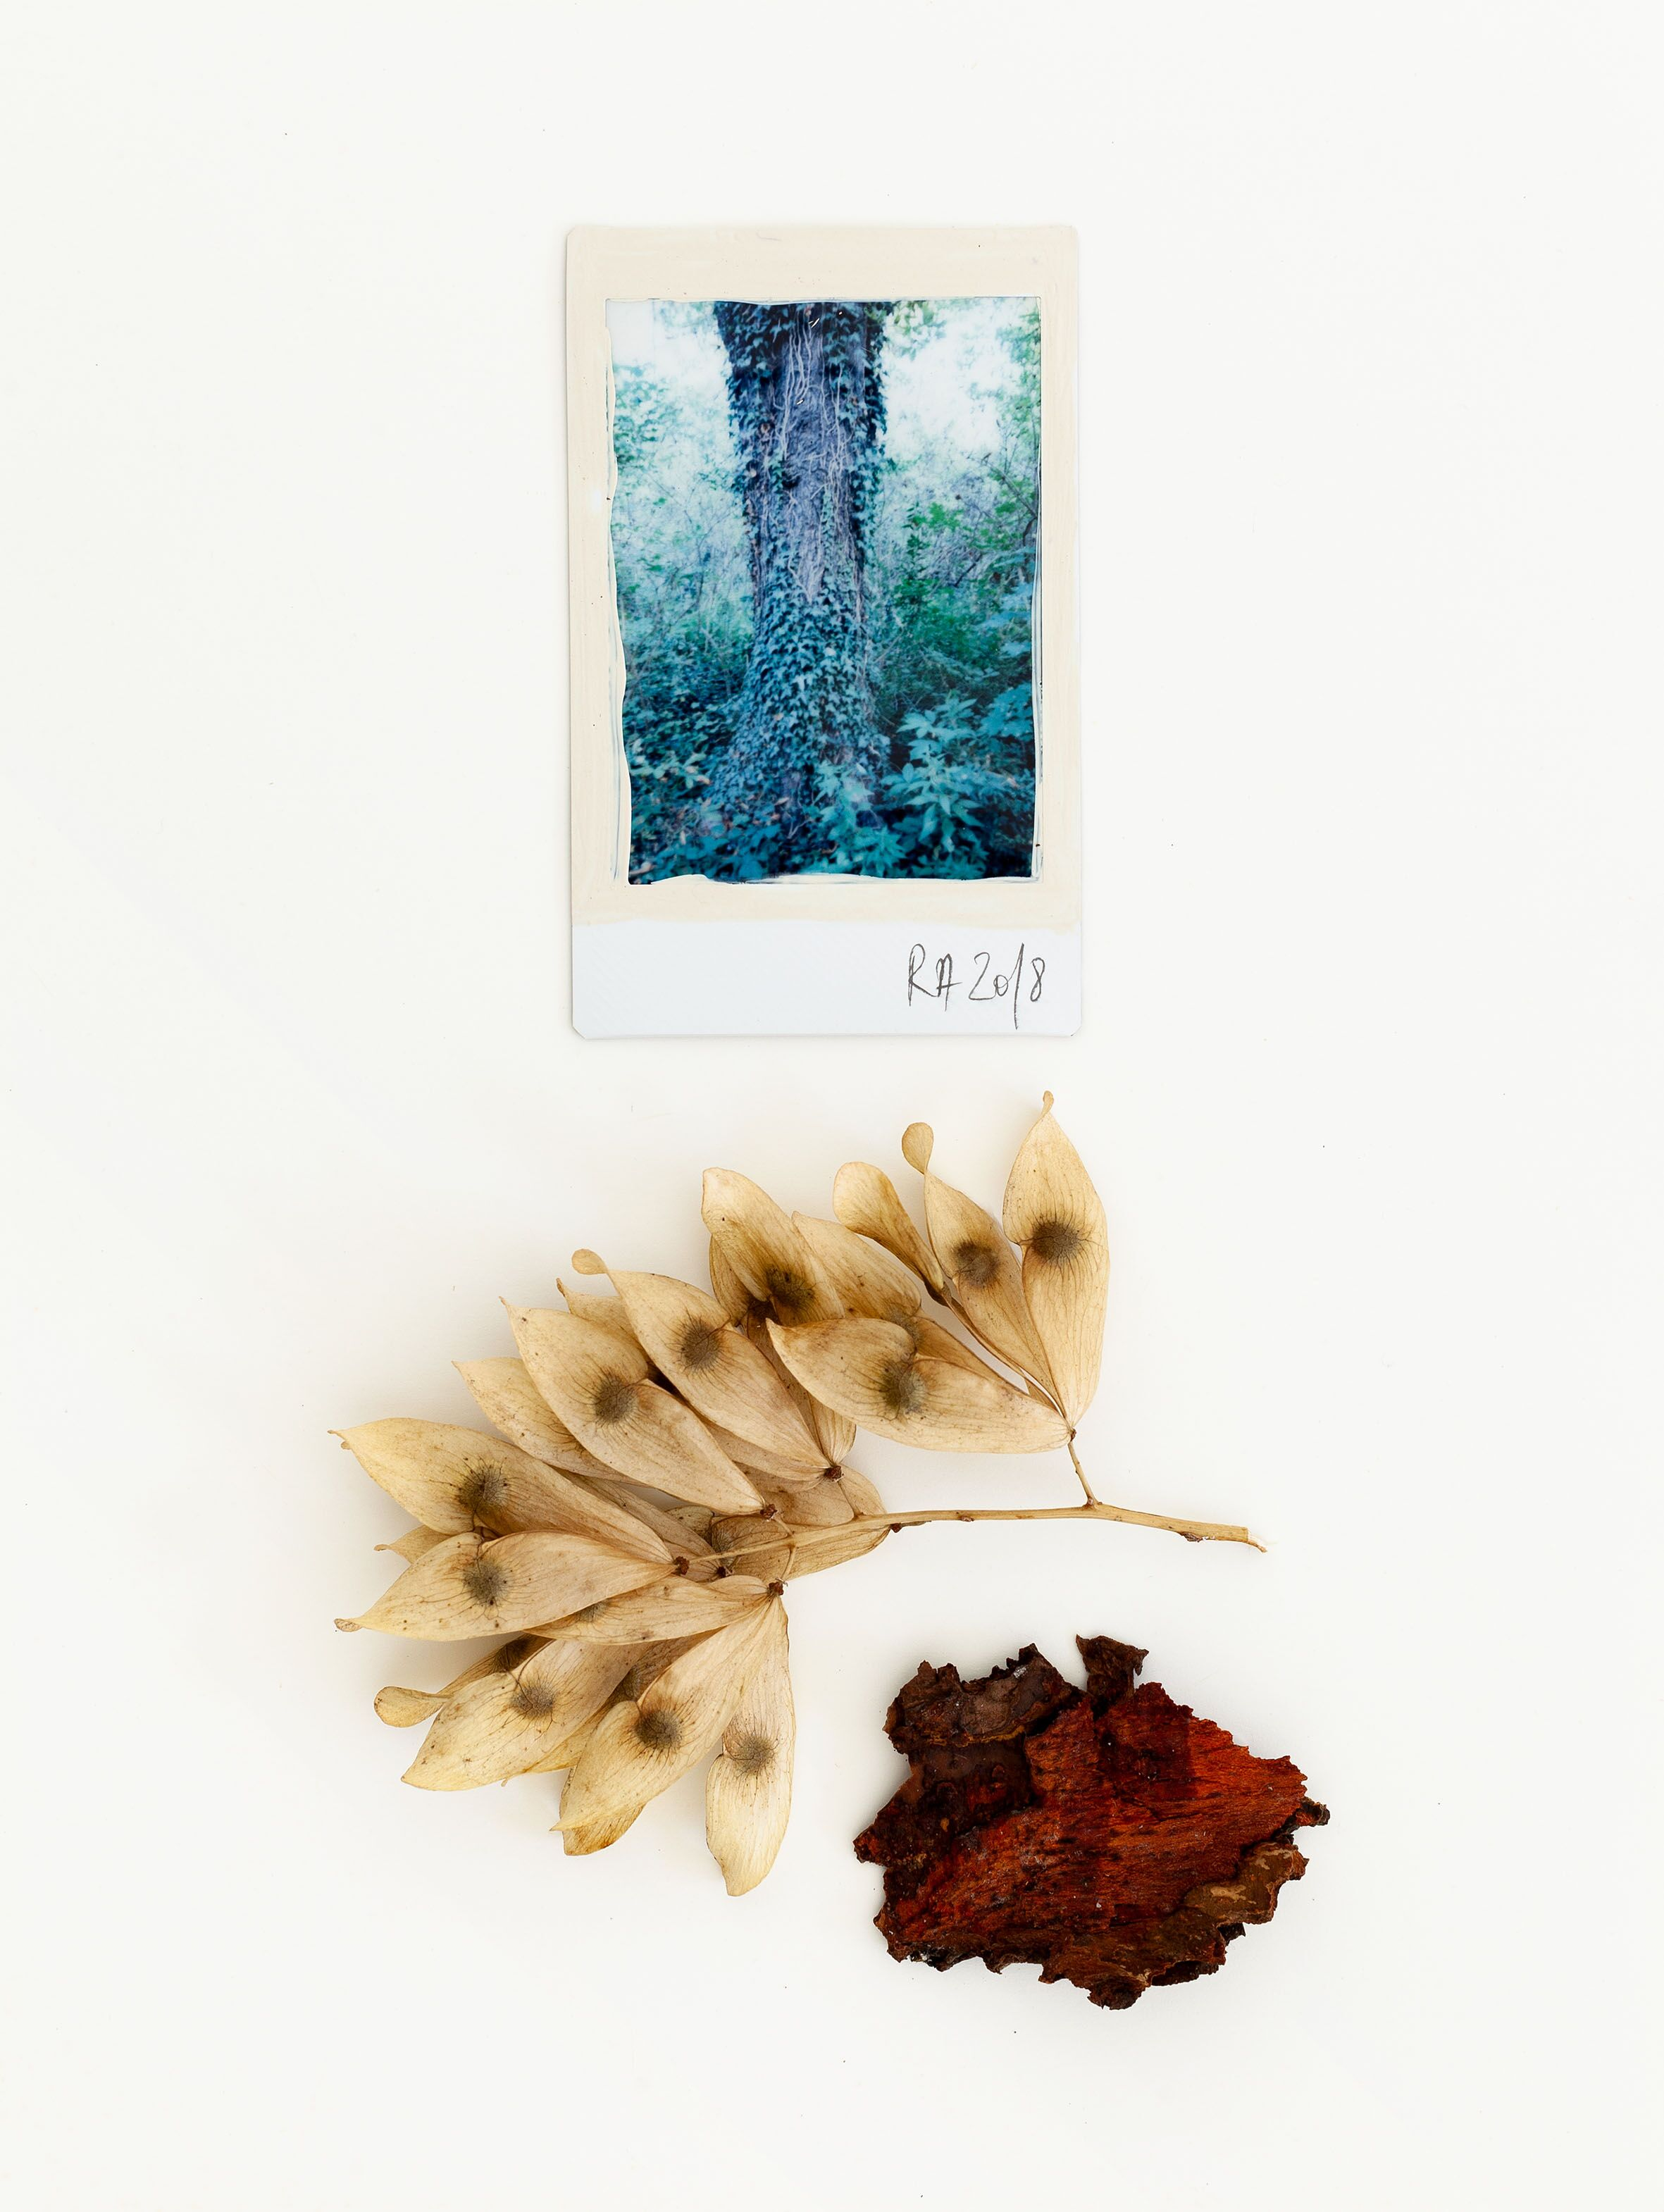 Regina Maria Anzerberger, Native Grounds XXIV, 2018, mixed media, instant film, acrylic, found objects, framed, 24 x 18, 1 (unique), Courtesy Regina Anzerberger/AnzerbergerGallery